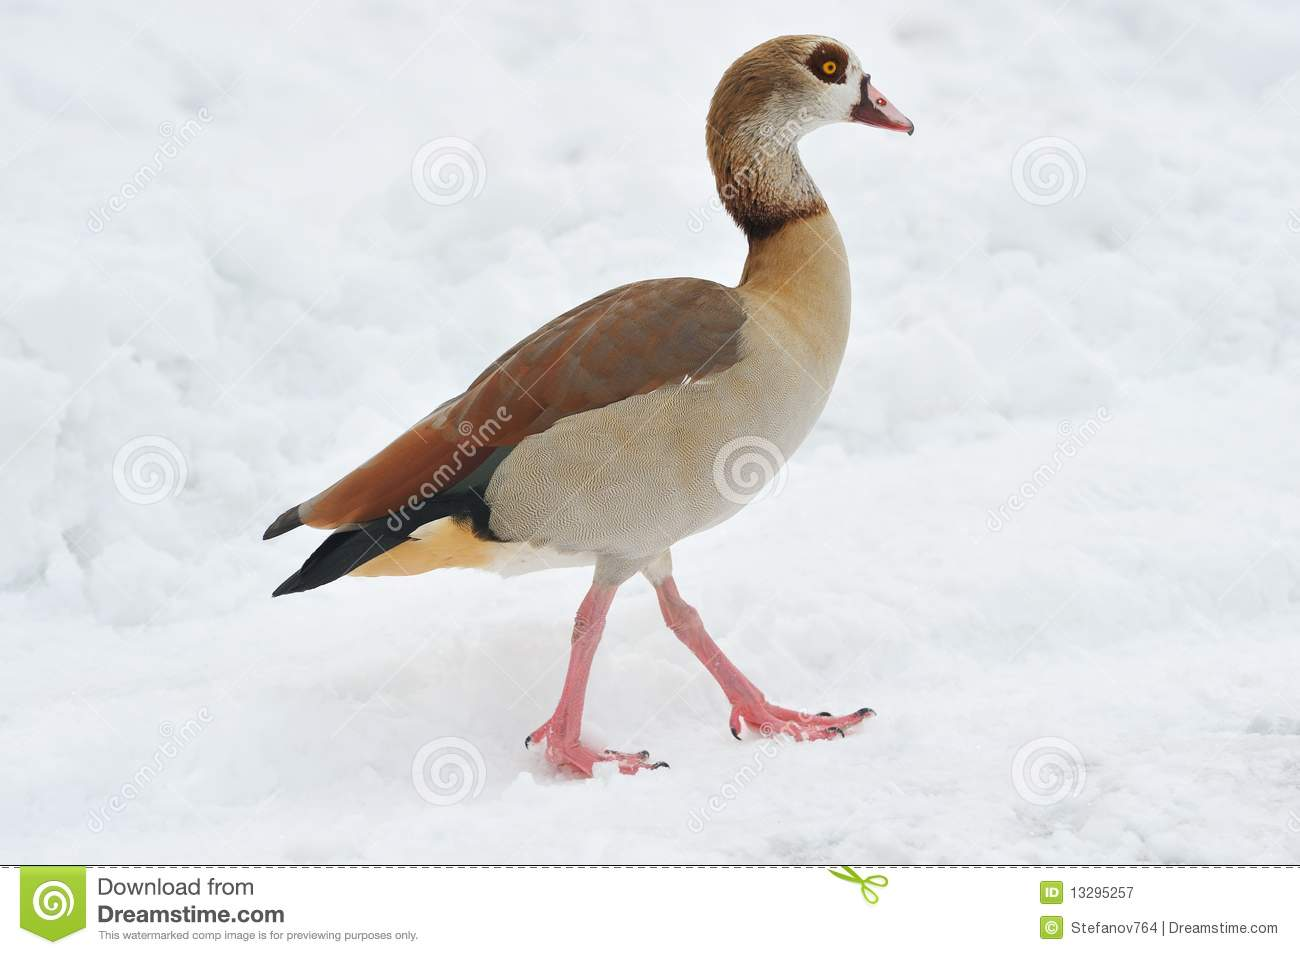 Egyptian Goose clipart #17, Download drawings